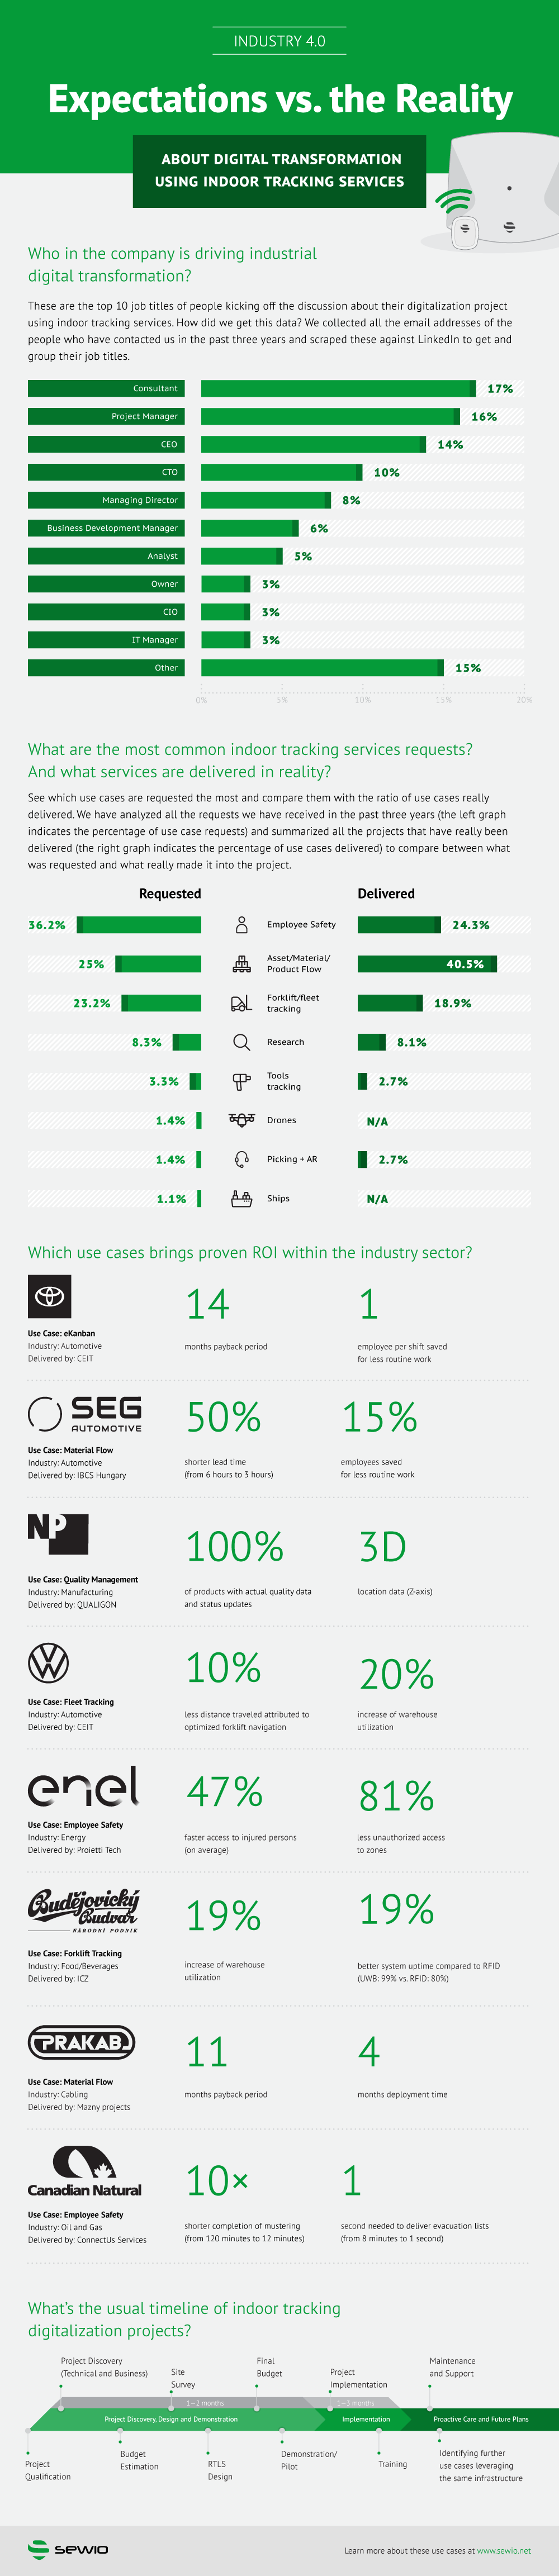 [Infographic] Industry 4.0 Industrial Digitalisation: Expectations vs. Reality on Using Real-time Location – courtesy of Sewio